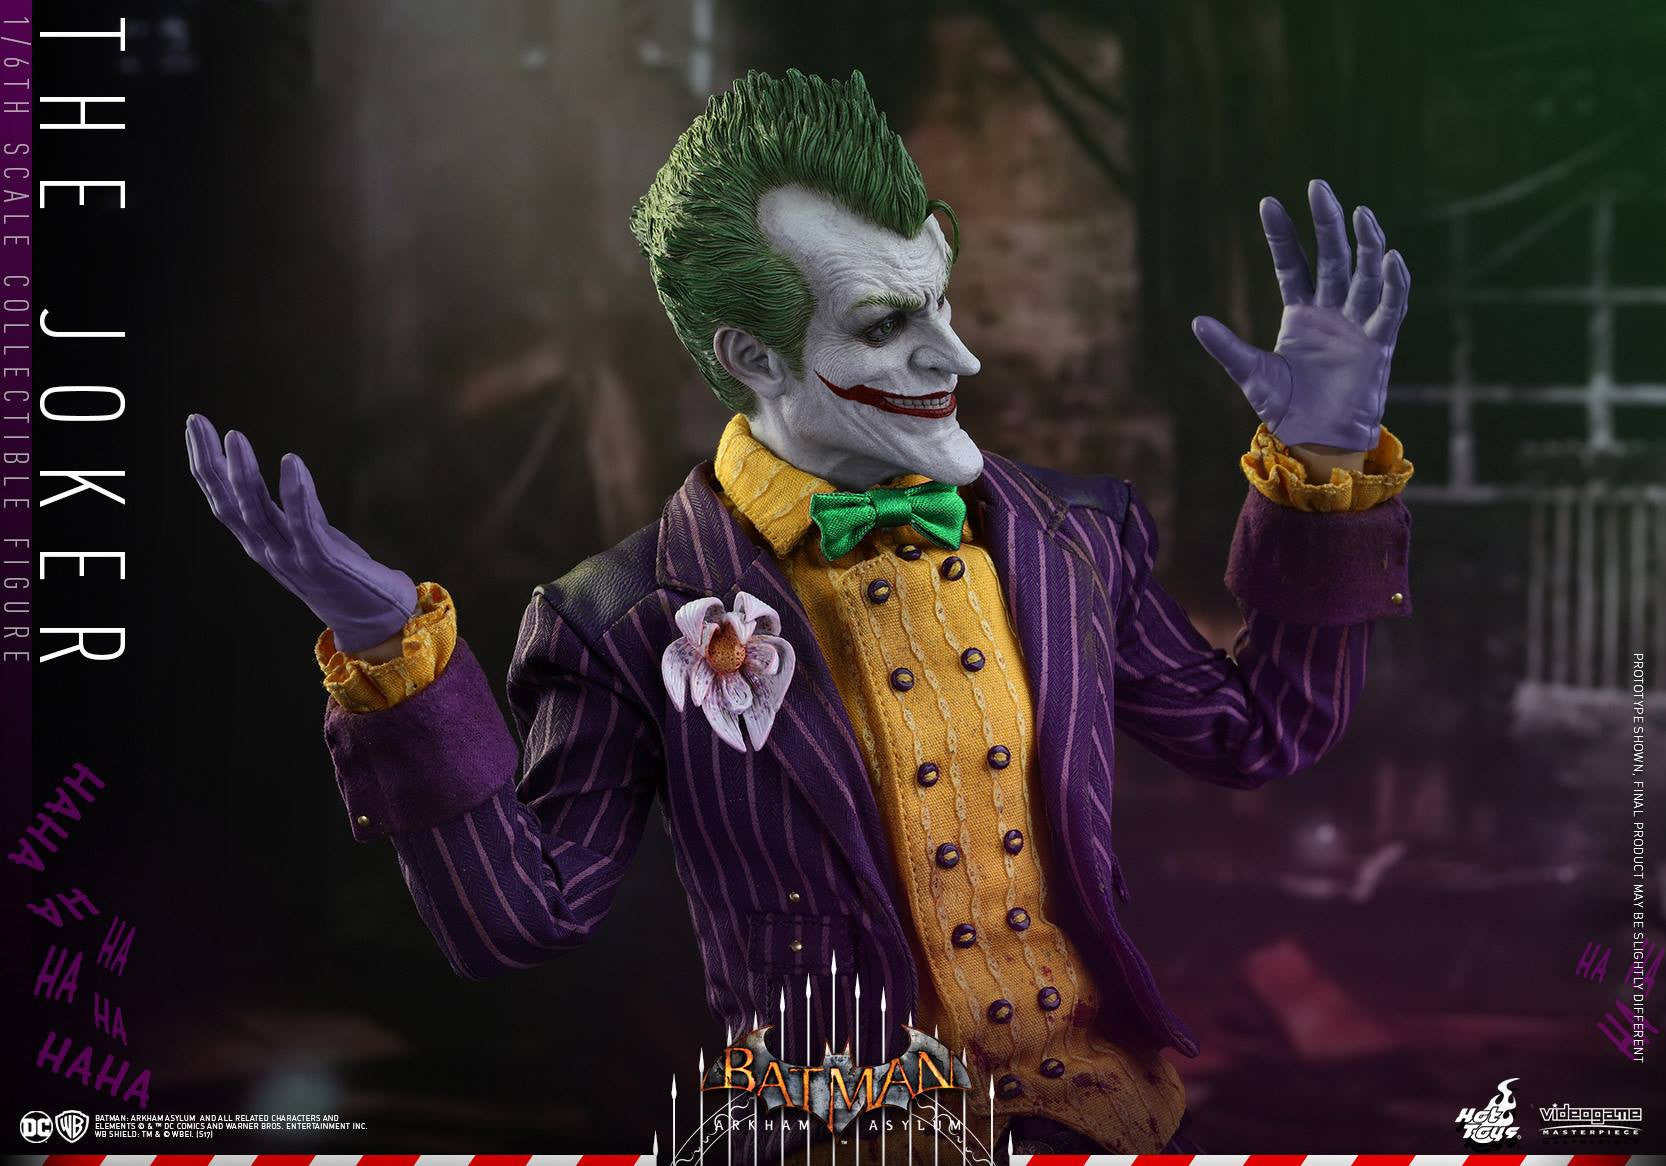 Hot Toys - VGM27 - Batman: Arkham Asylum - The Joker - Marvelous Toys - 19